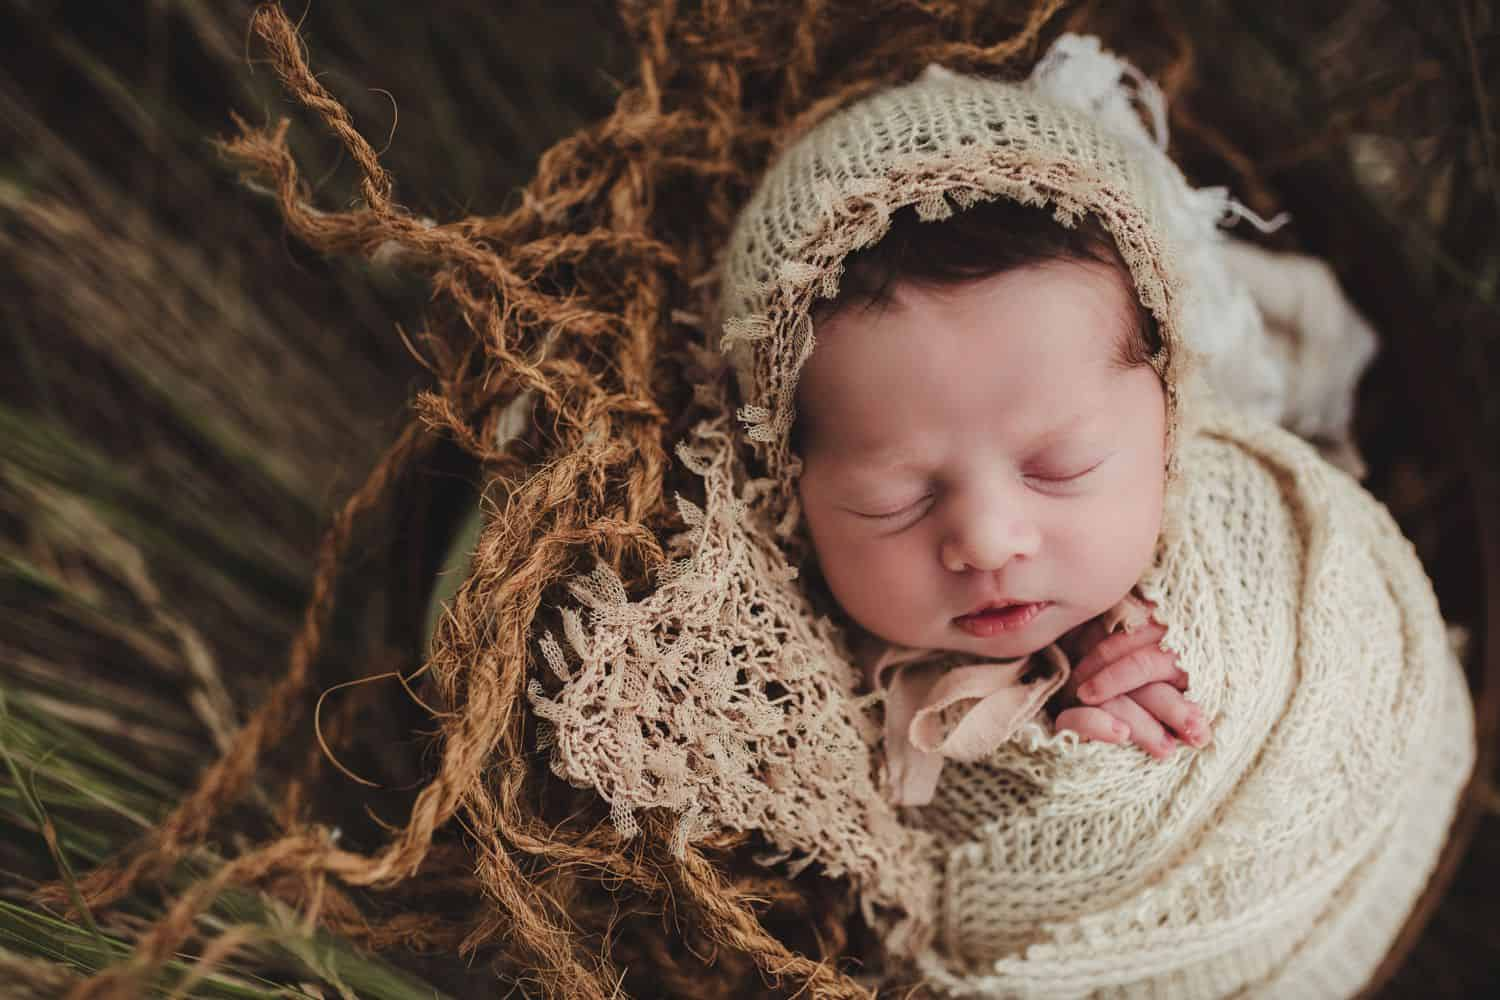 newborn wrapped in burlap and lying in a bed of reeds